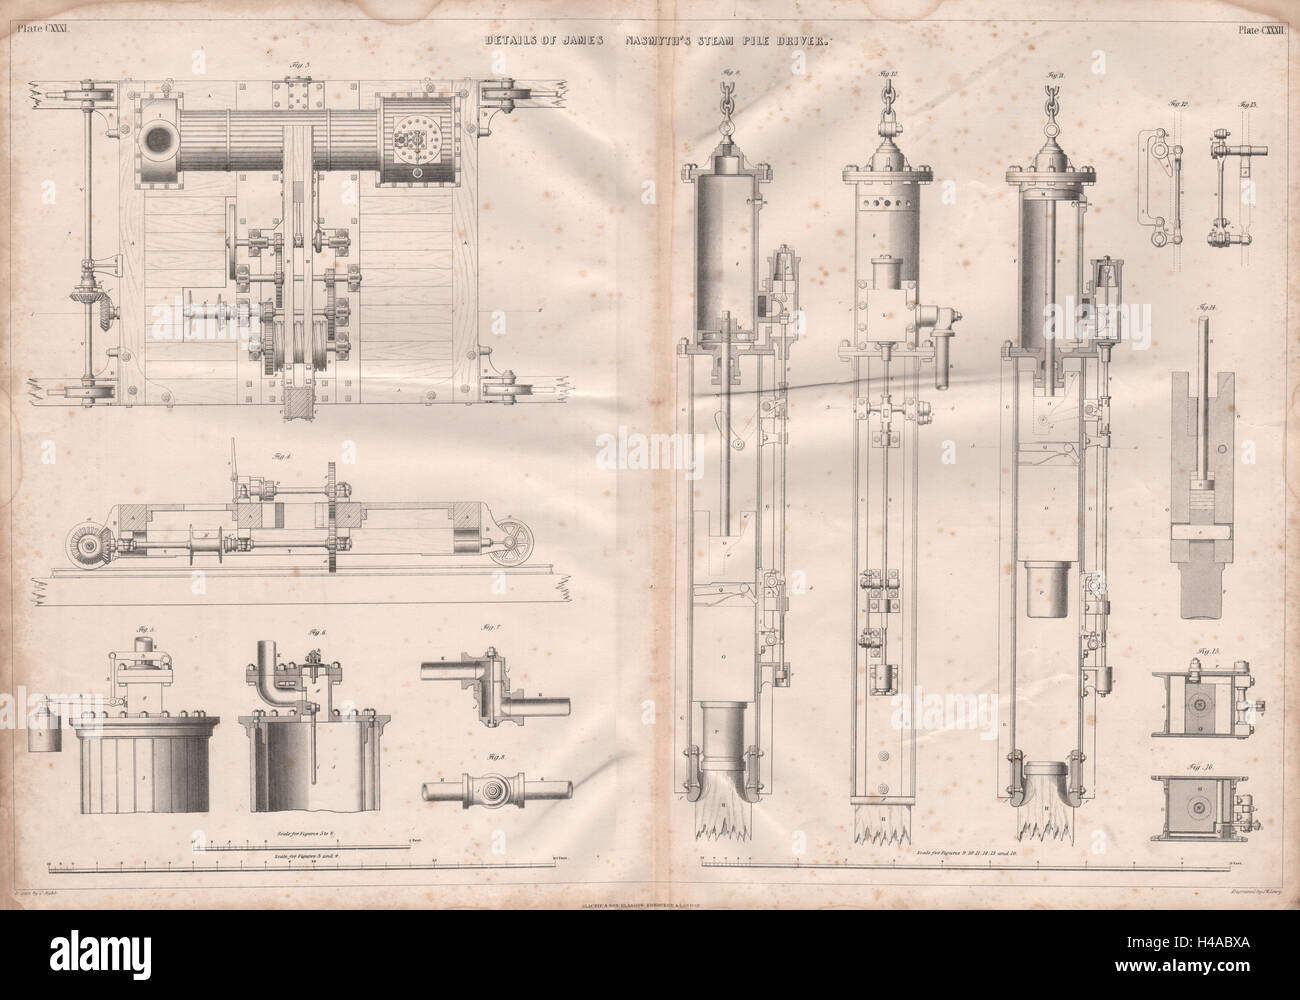 VICTORIAN ENGINEERING DRAWING. James Nasmyth's steam pile driver details 1847 Stock Photo